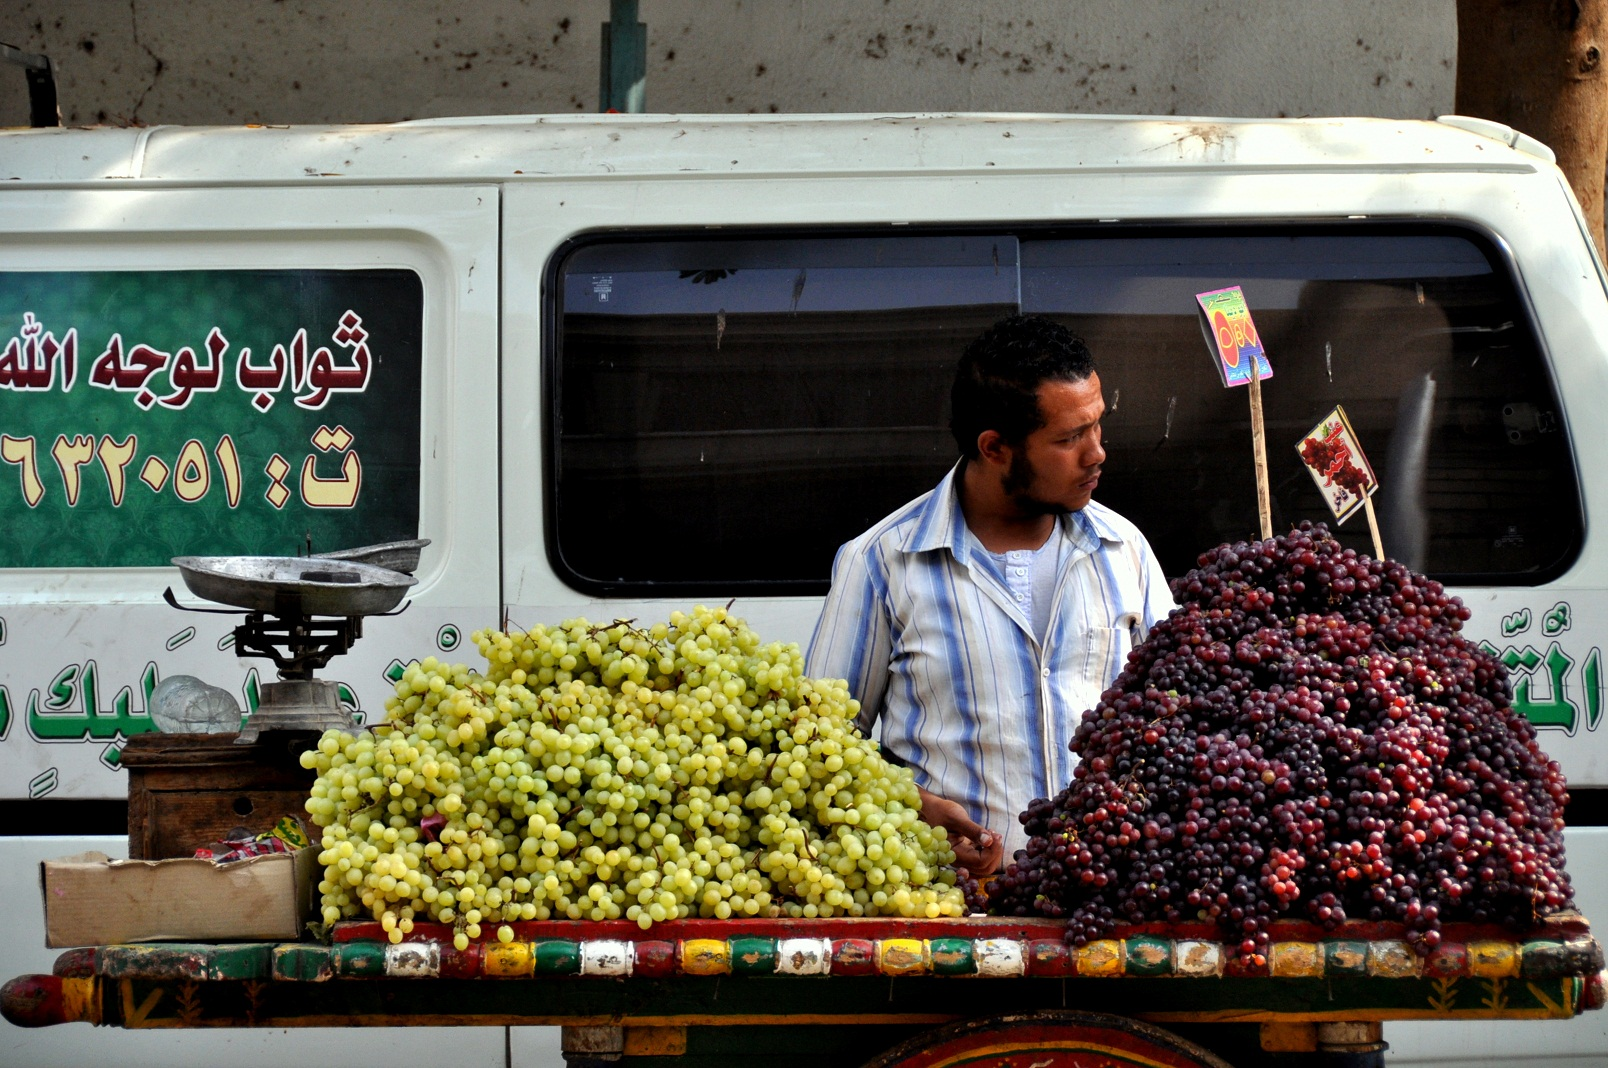 Egypt's cabinet decided in September to impose price ceilings on fruits and vegetables. (Photo by Aaron T. Rose)